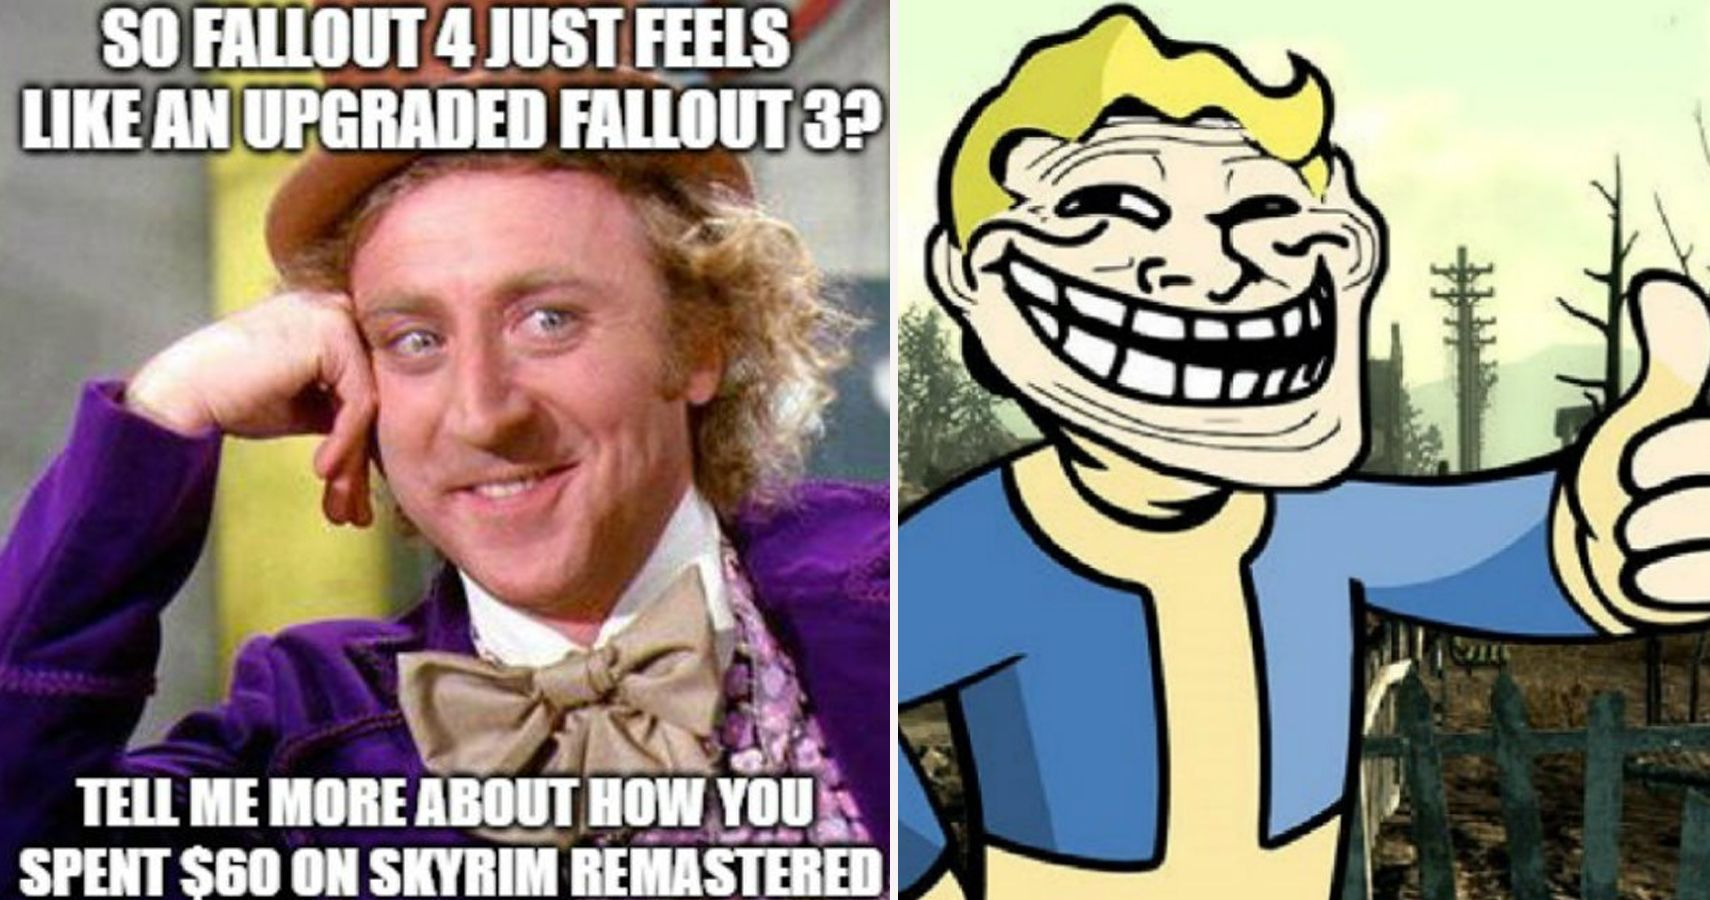 20 Hilarious Fallout Vs Skyrim Memes That Show Fallout Is Better